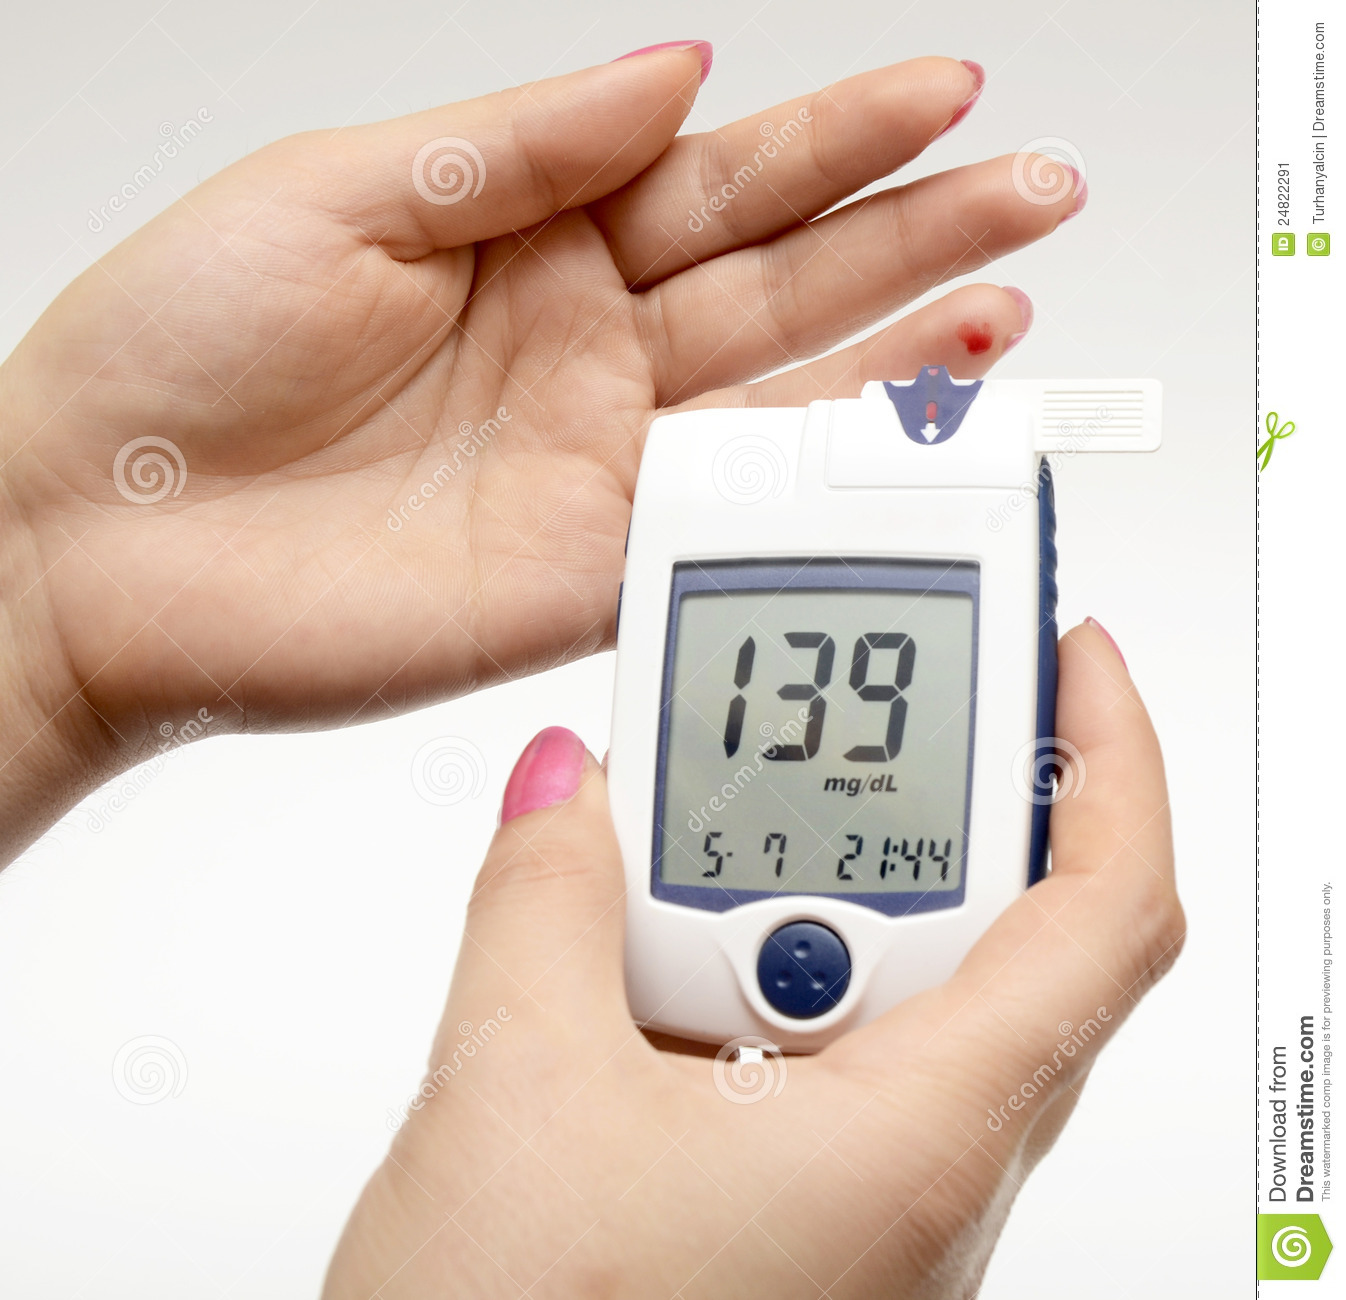 Credit Score Levels >> Measuring Blood Sugar Stock Image - Image: 24822291